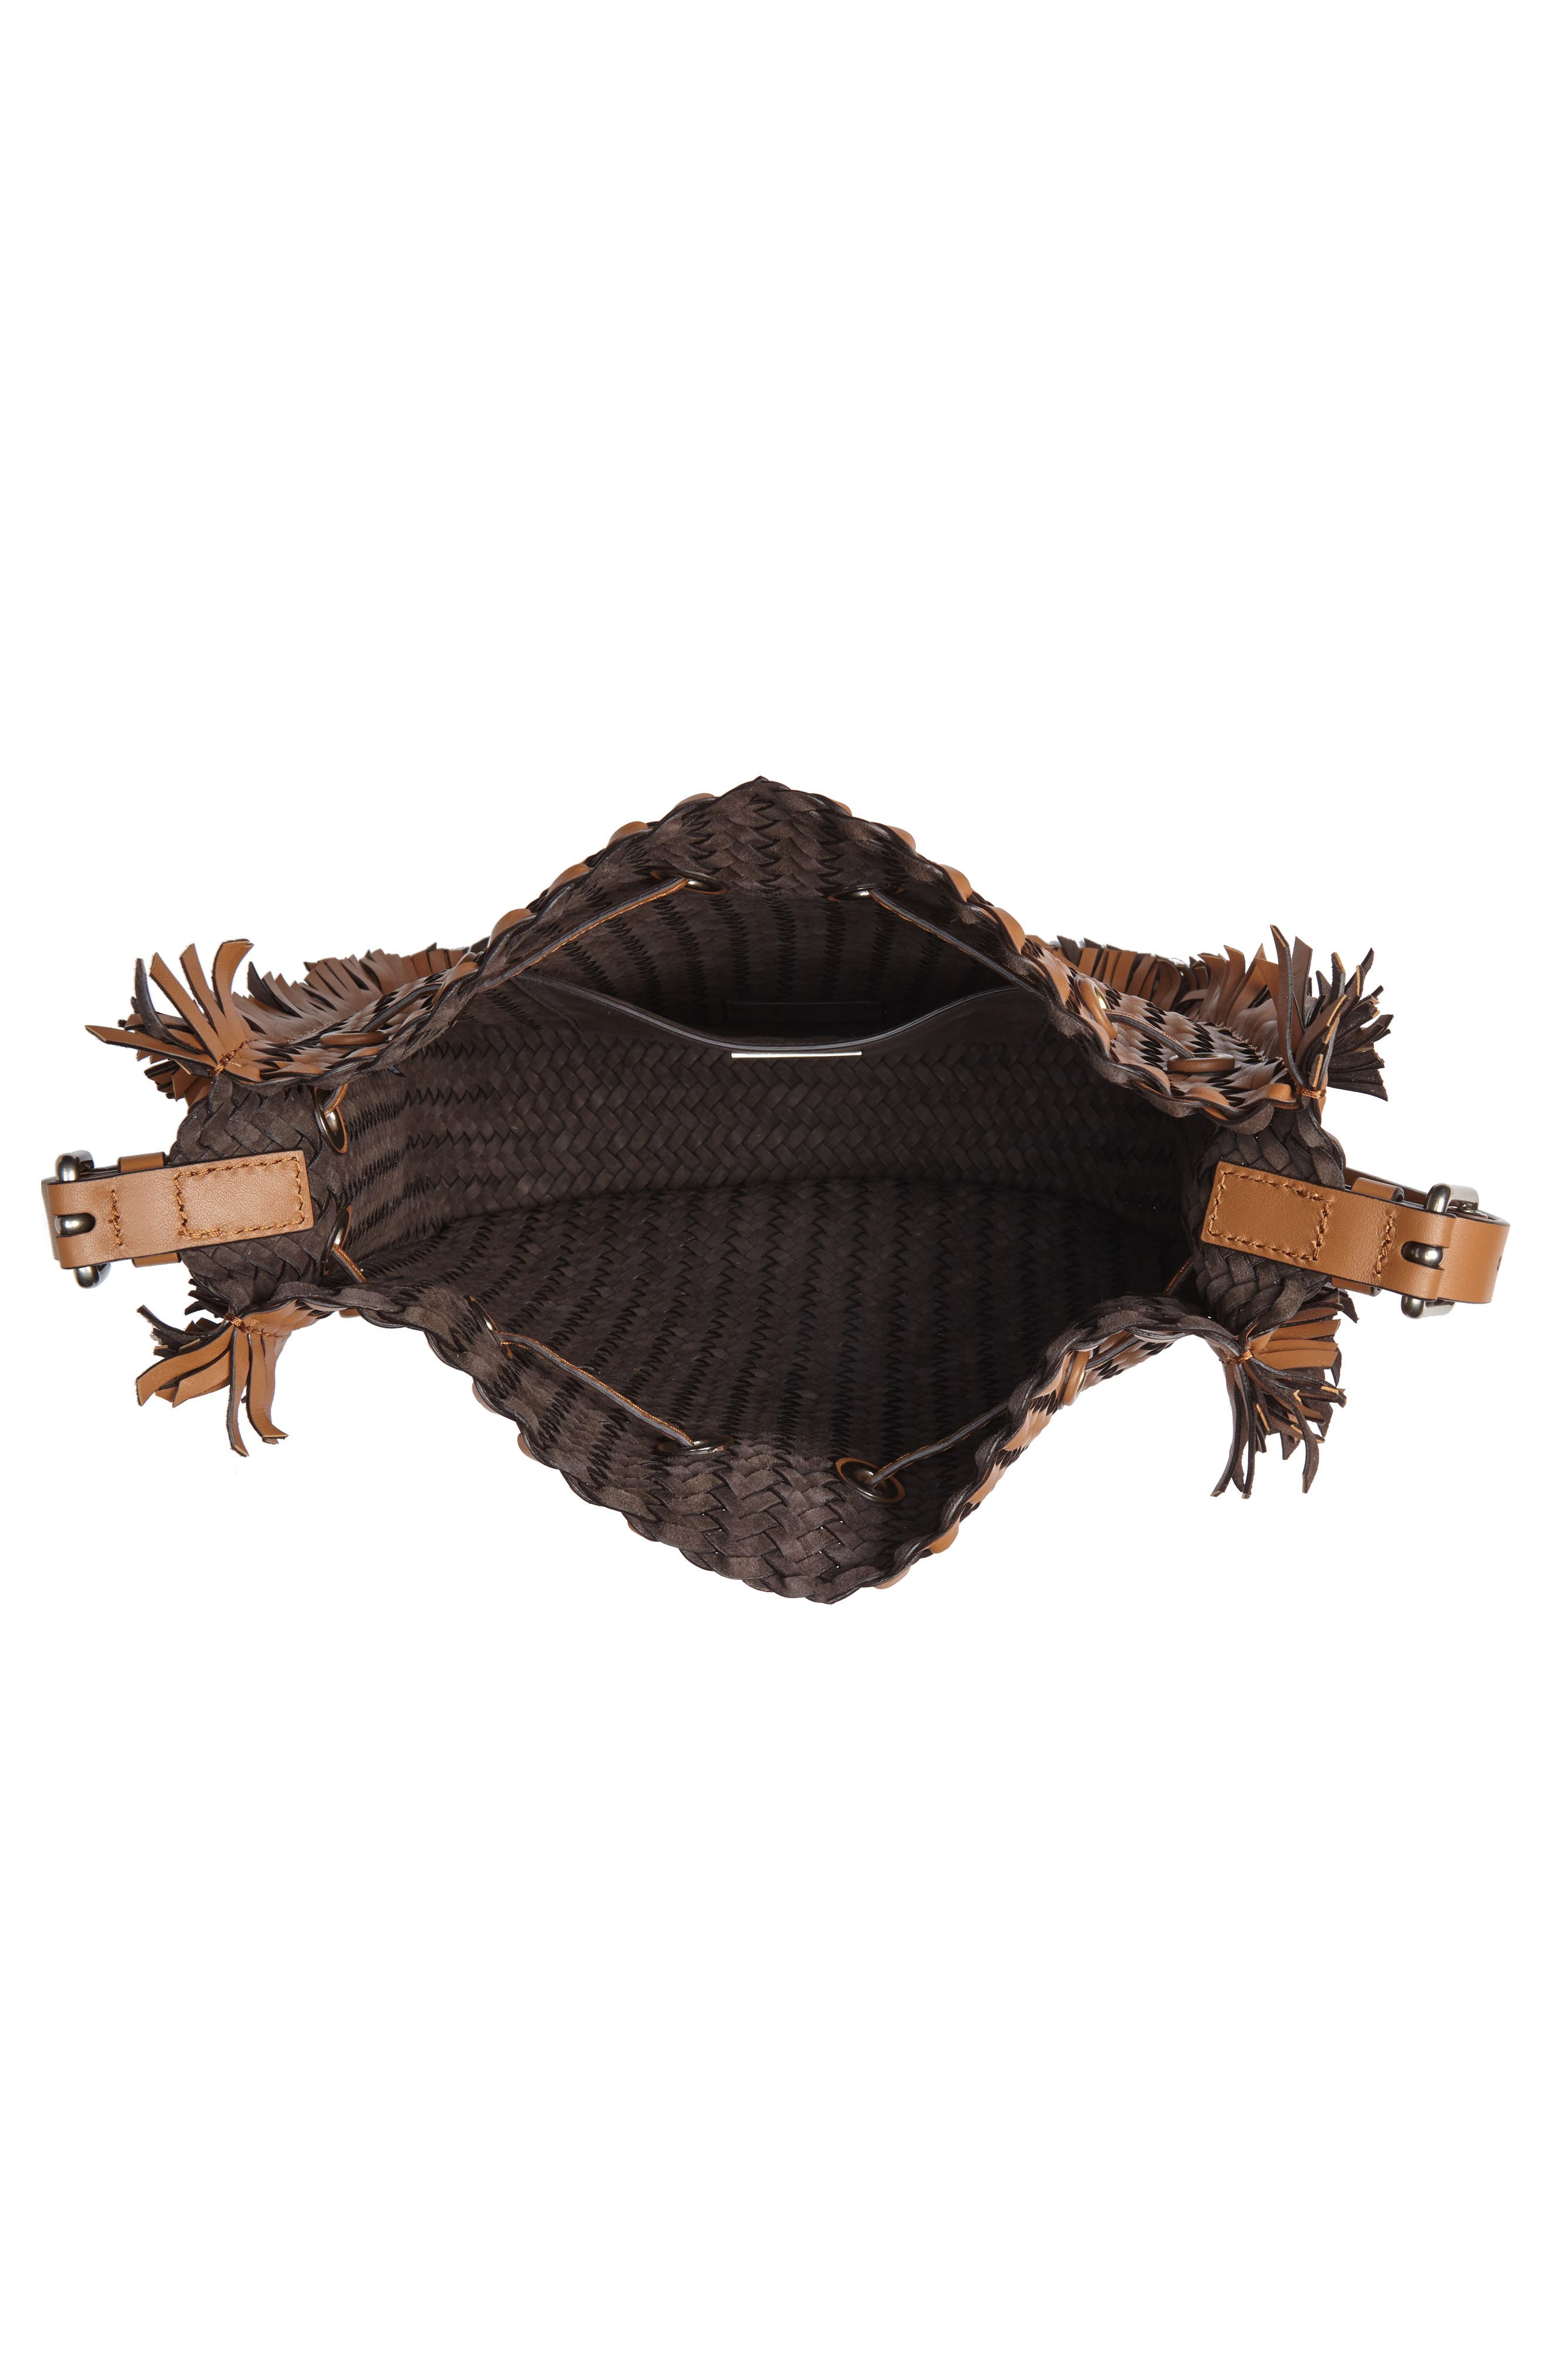 Maldives Woven Frayed Leather Crossbody Bag,                             Alternate thumbnail 4, color,                             Acorn